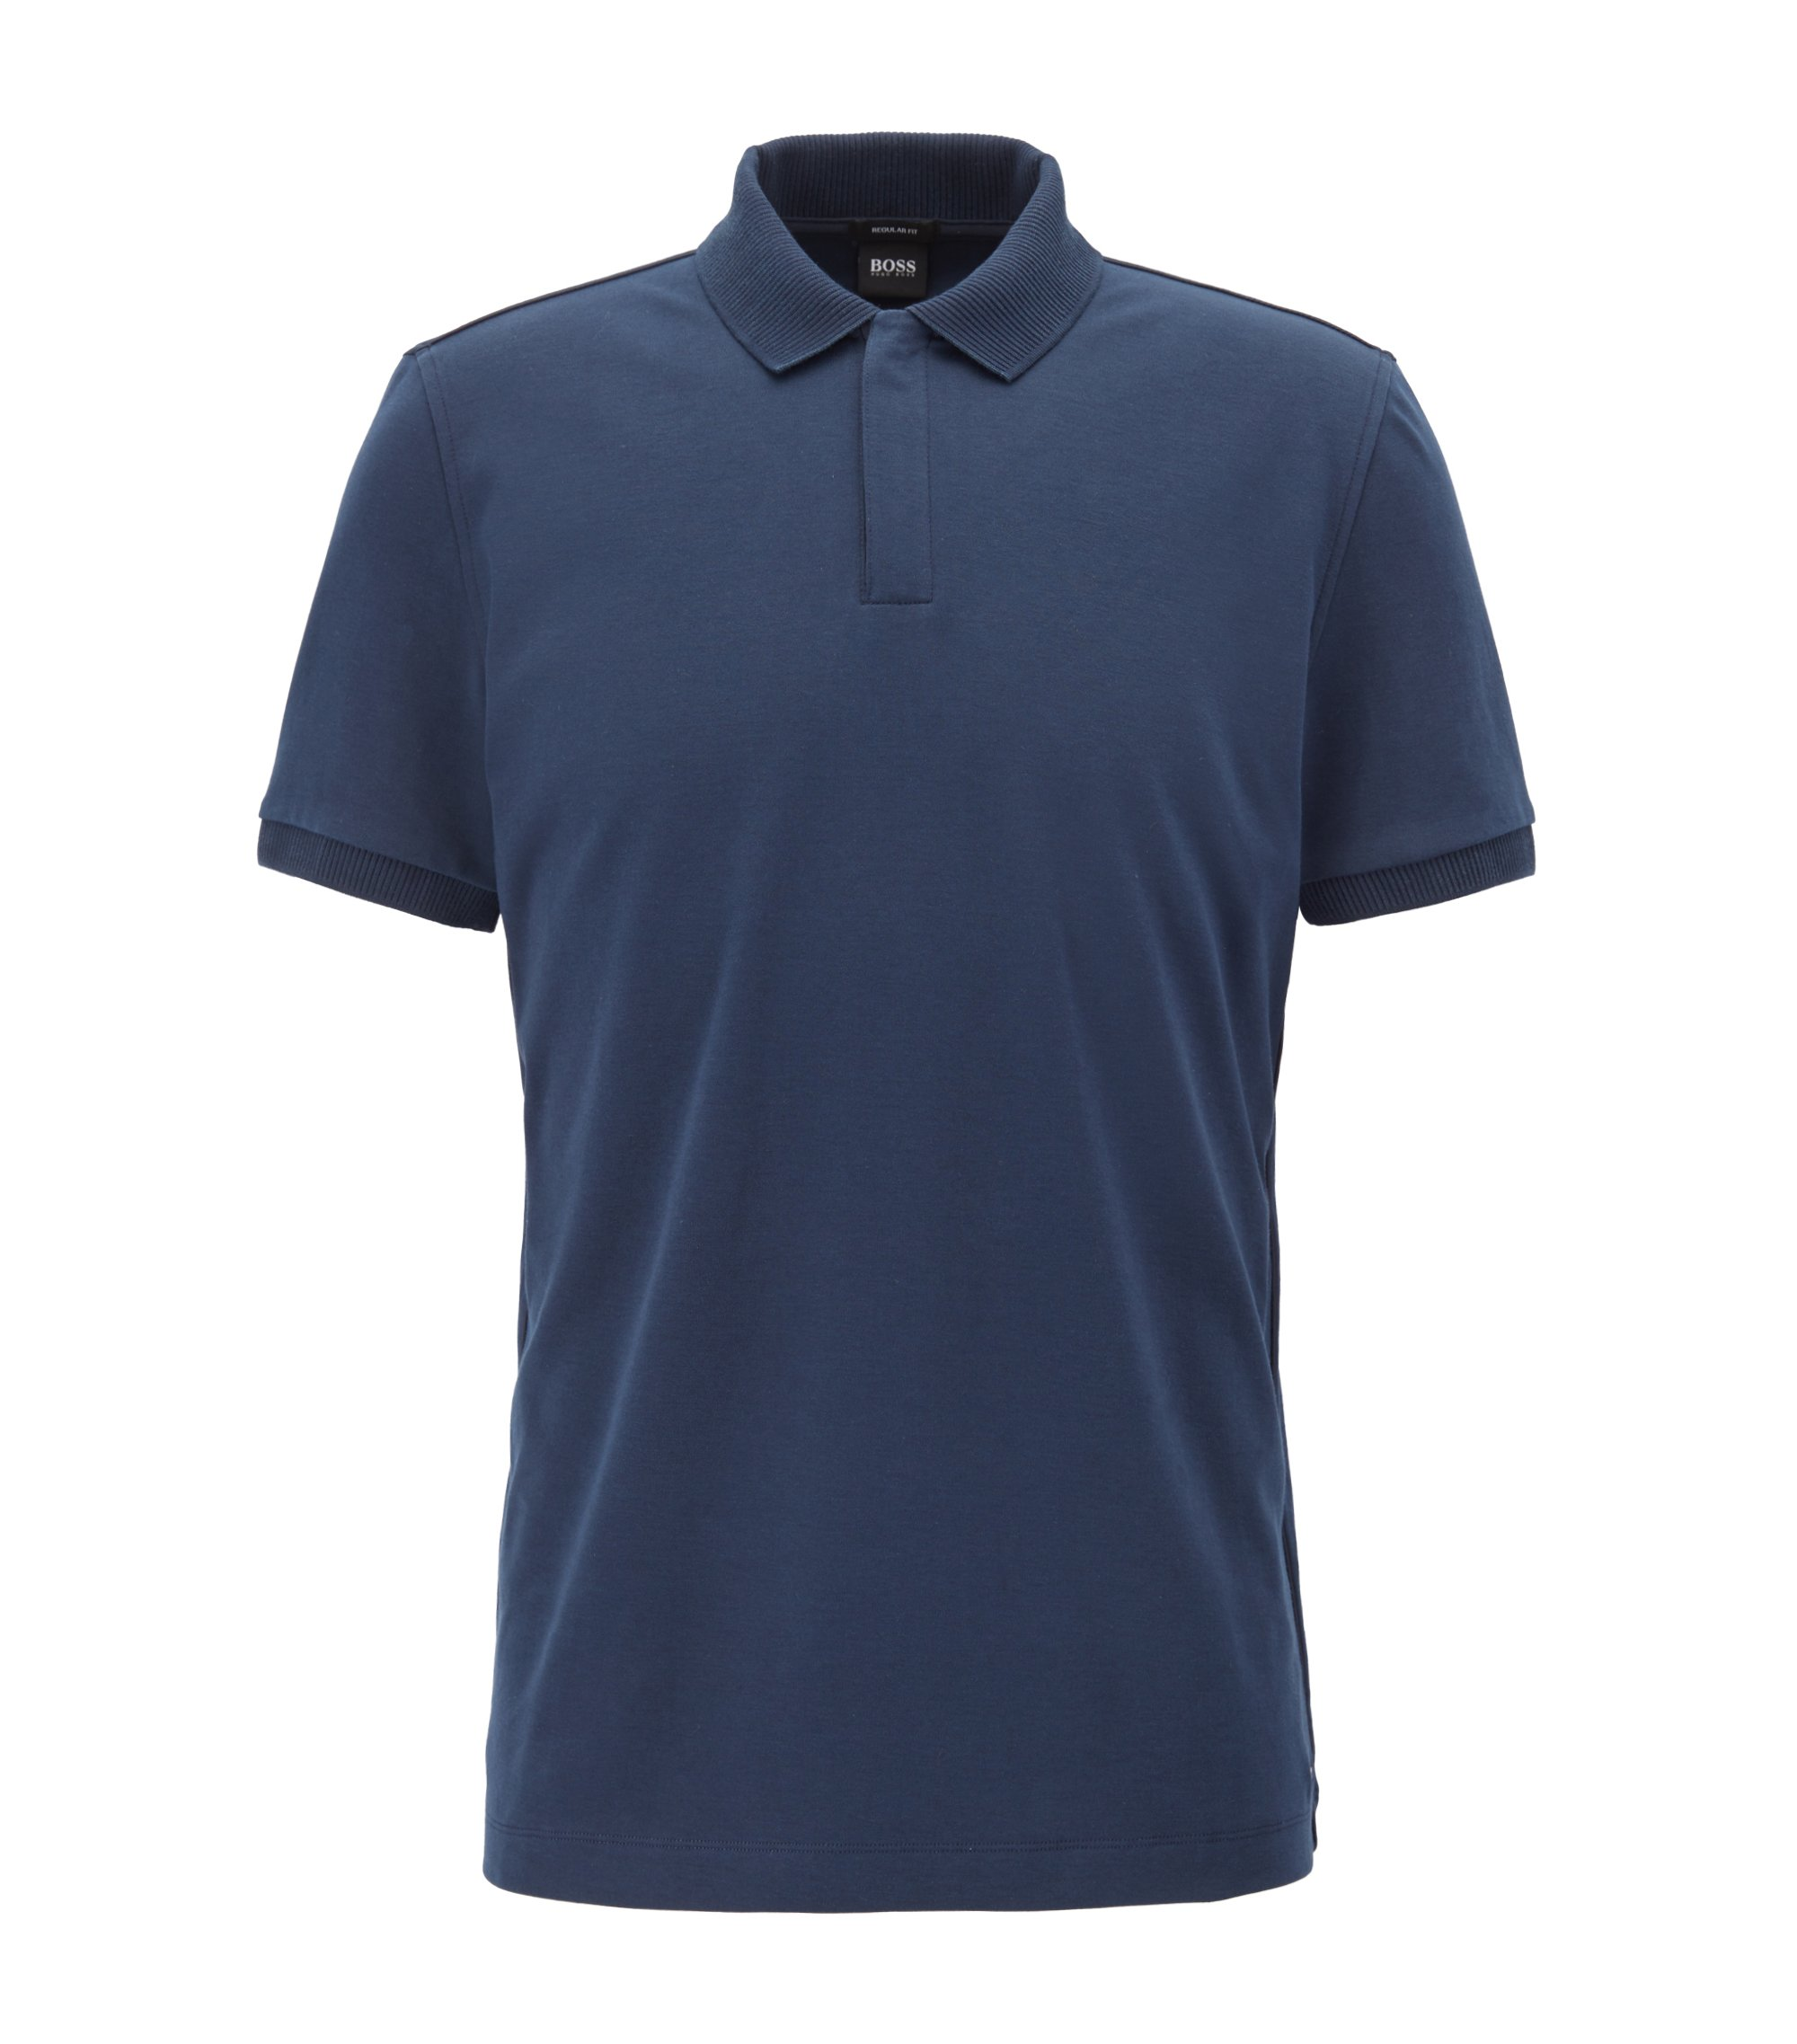 Cotton Polo Shirt, Regular Fit | Pohl, Dark Blue